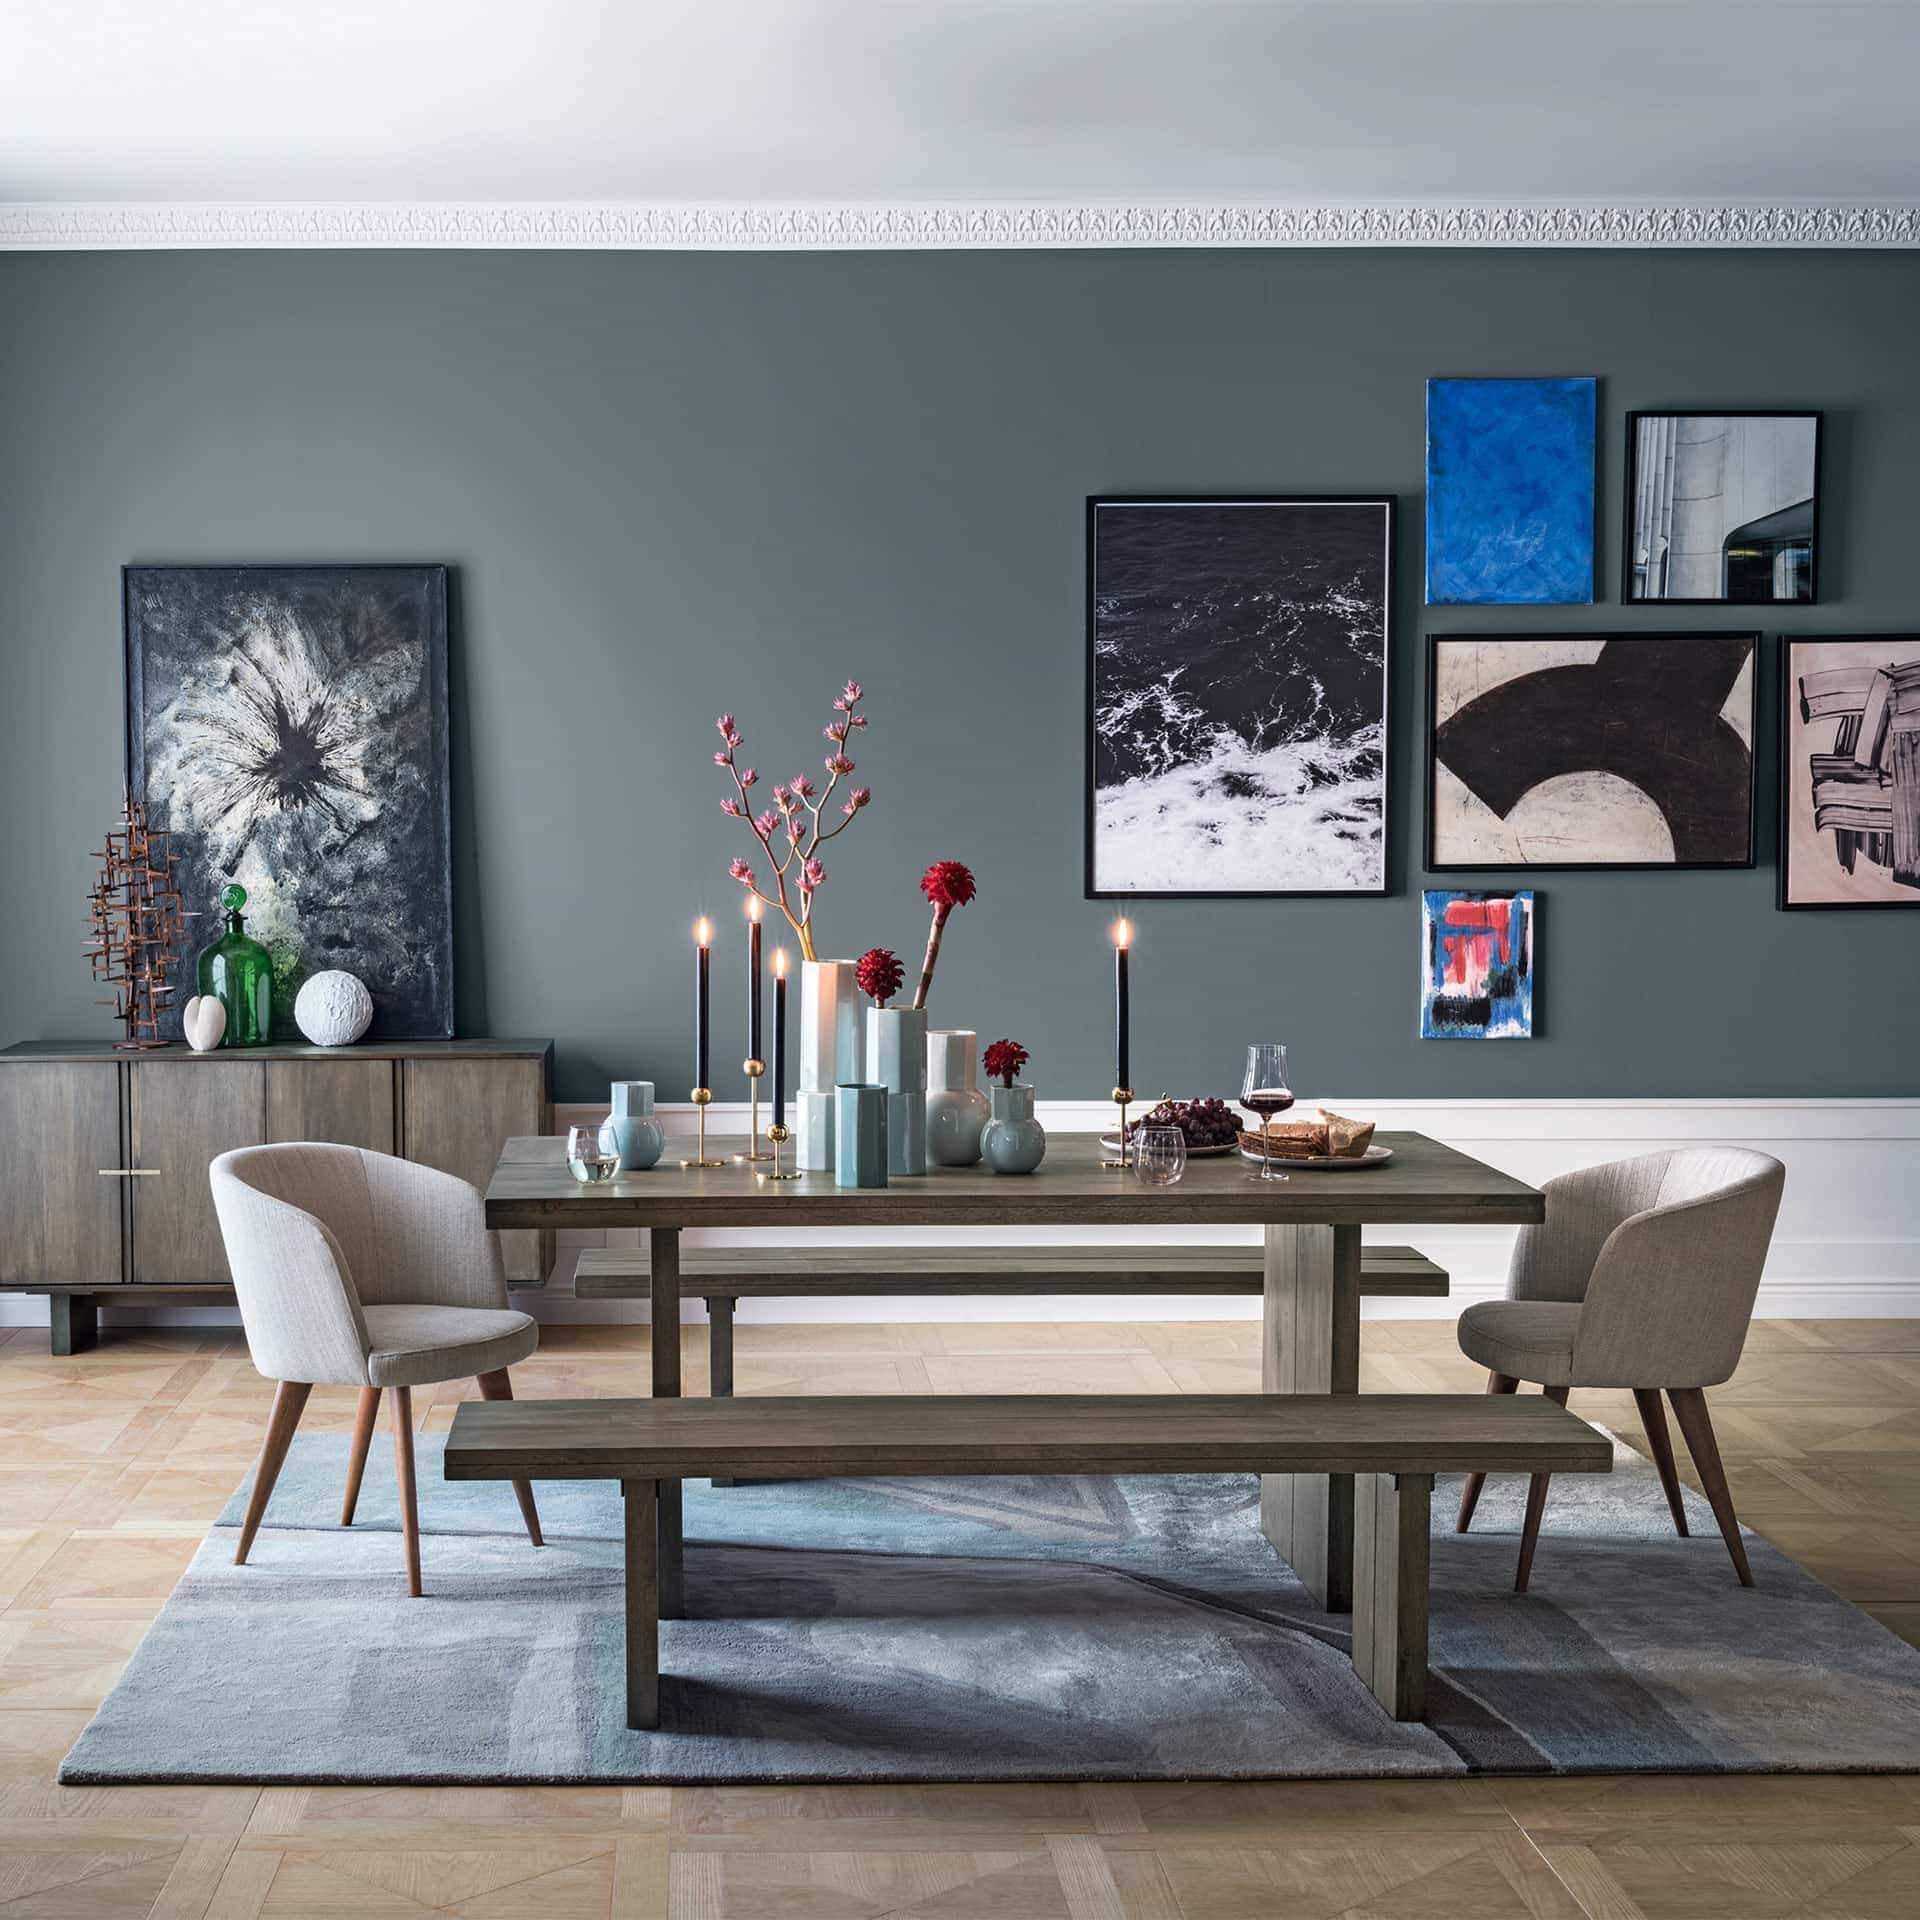 Perfect West Elm Dining Room With Grey Feature Wall And Gallery Wall With Pink  Artworks